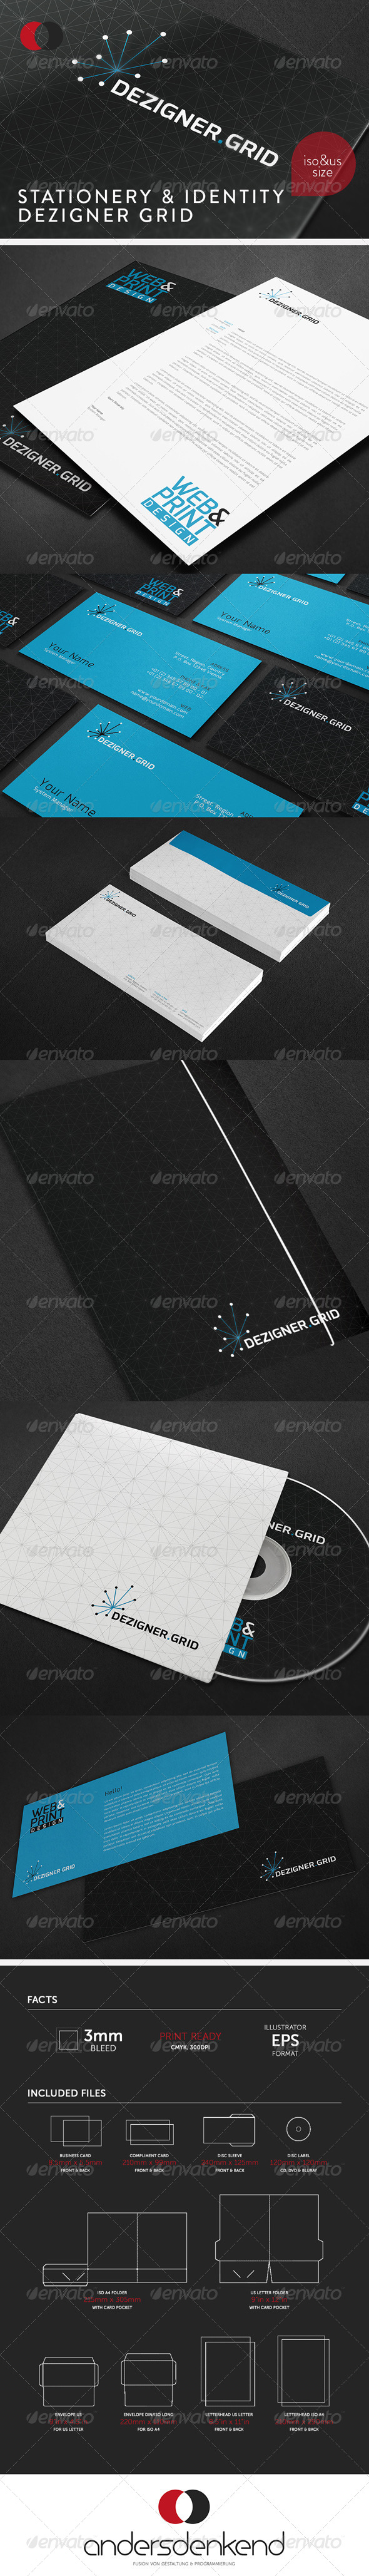 GraphicRiver Stationery & Identity Dezigner Grid 5900201